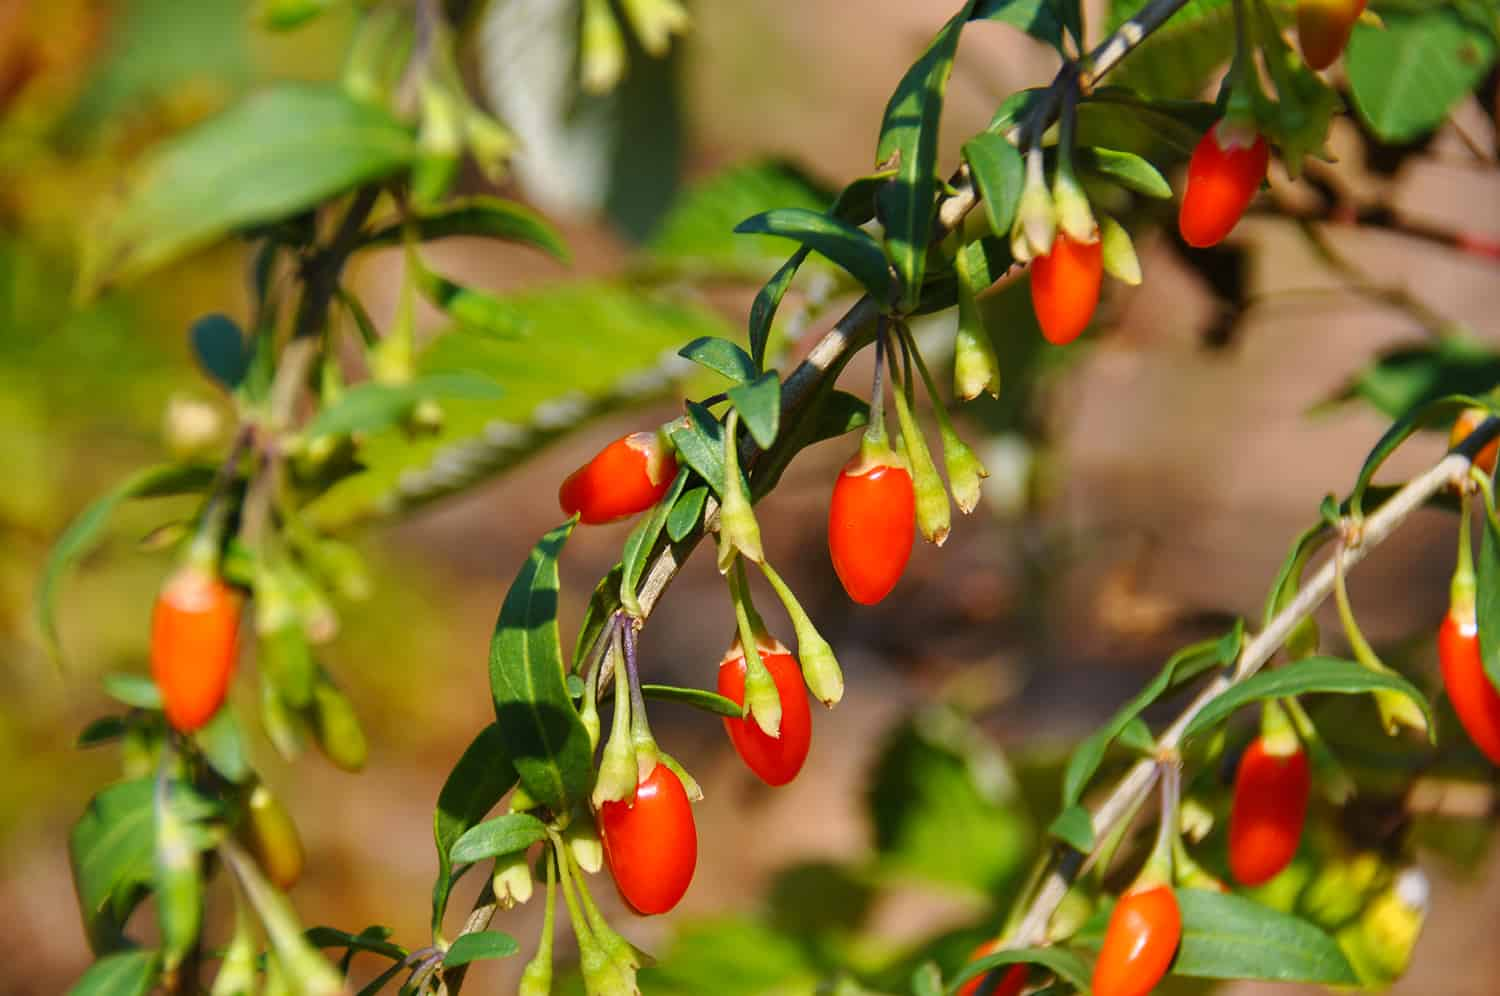 Lycium barbarum (Goji berries)